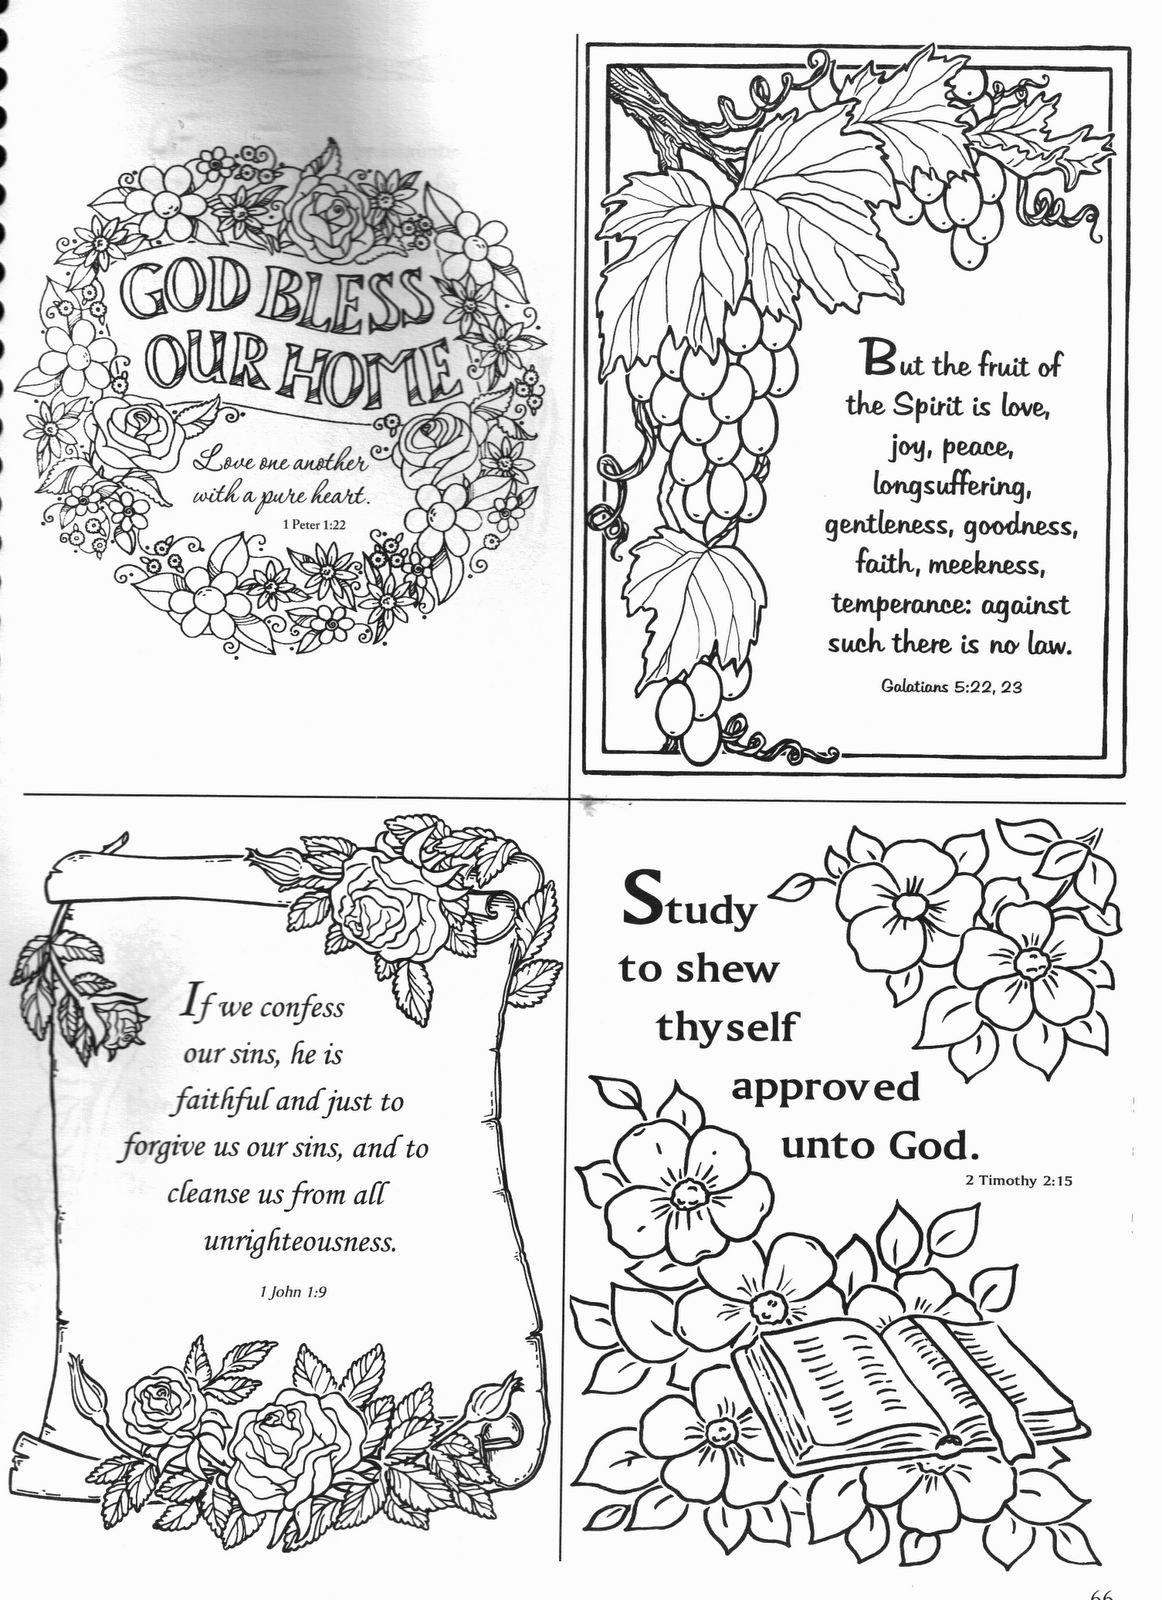 Coloring pages bible verses - Bible Verse Mottoes Bible Verses Coloring Pages Bible Verses Coloring Gallery